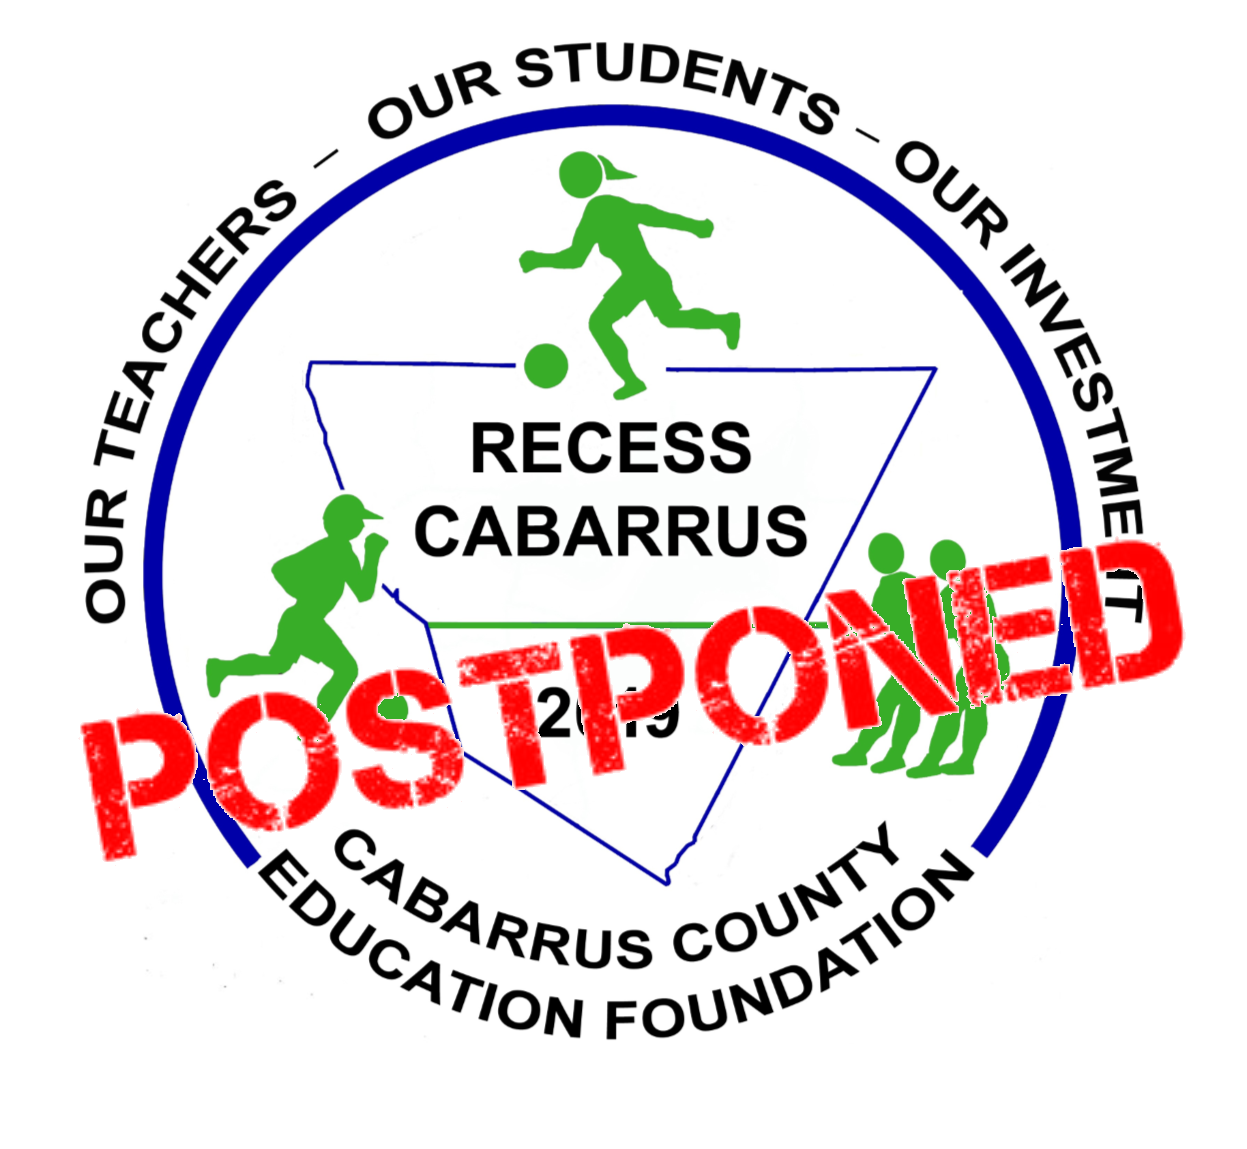 Recess Cabarrus Postponed